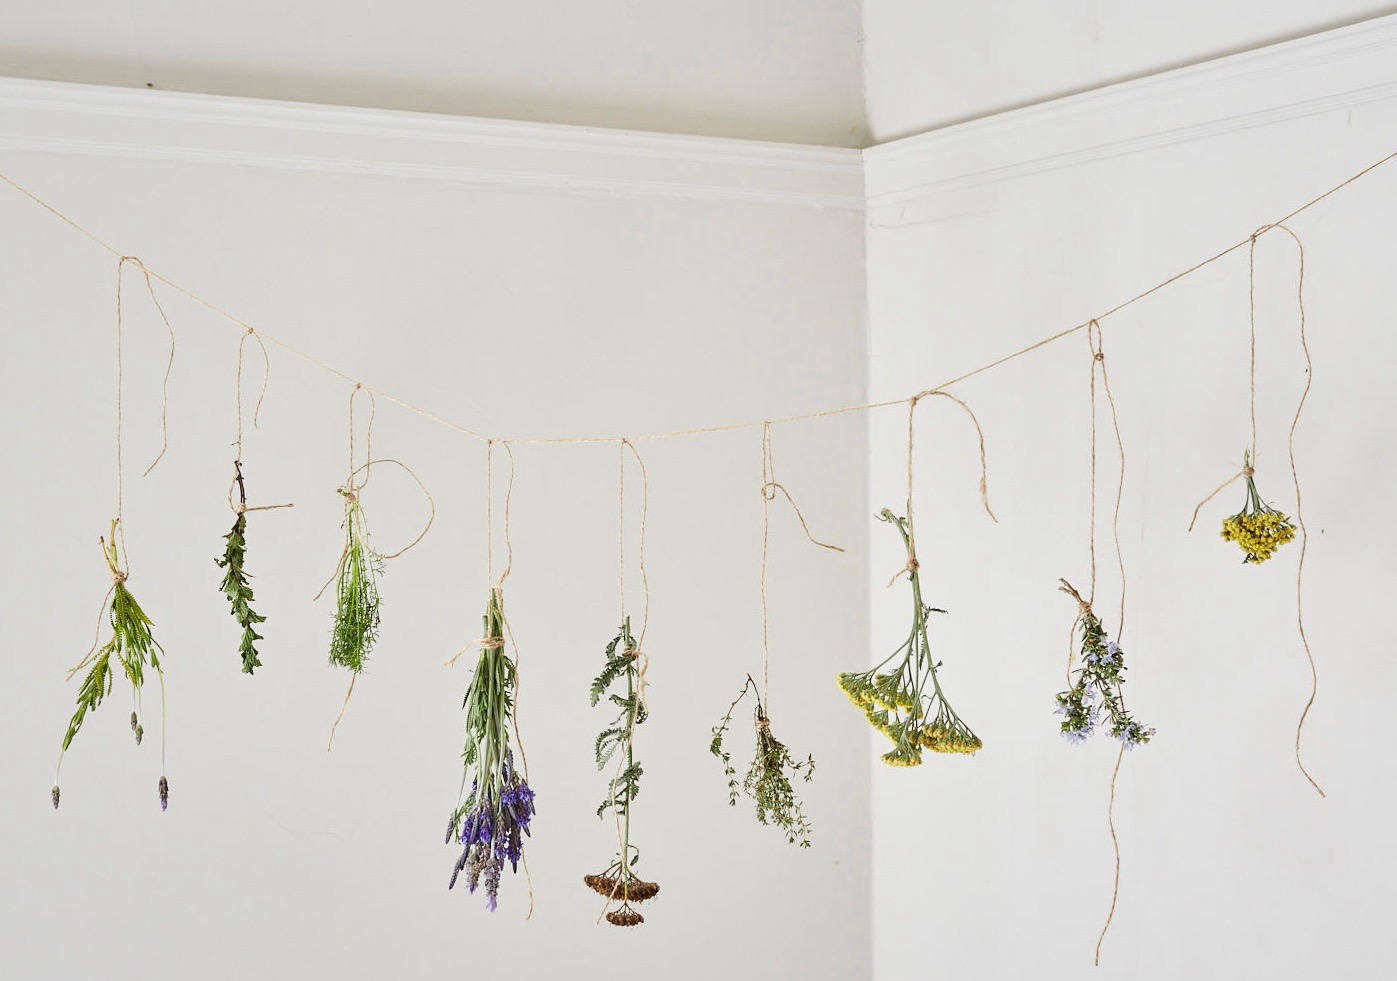 We got creative and made a bunch of bundles with herbs–including flowering Yarrow and Thyme.